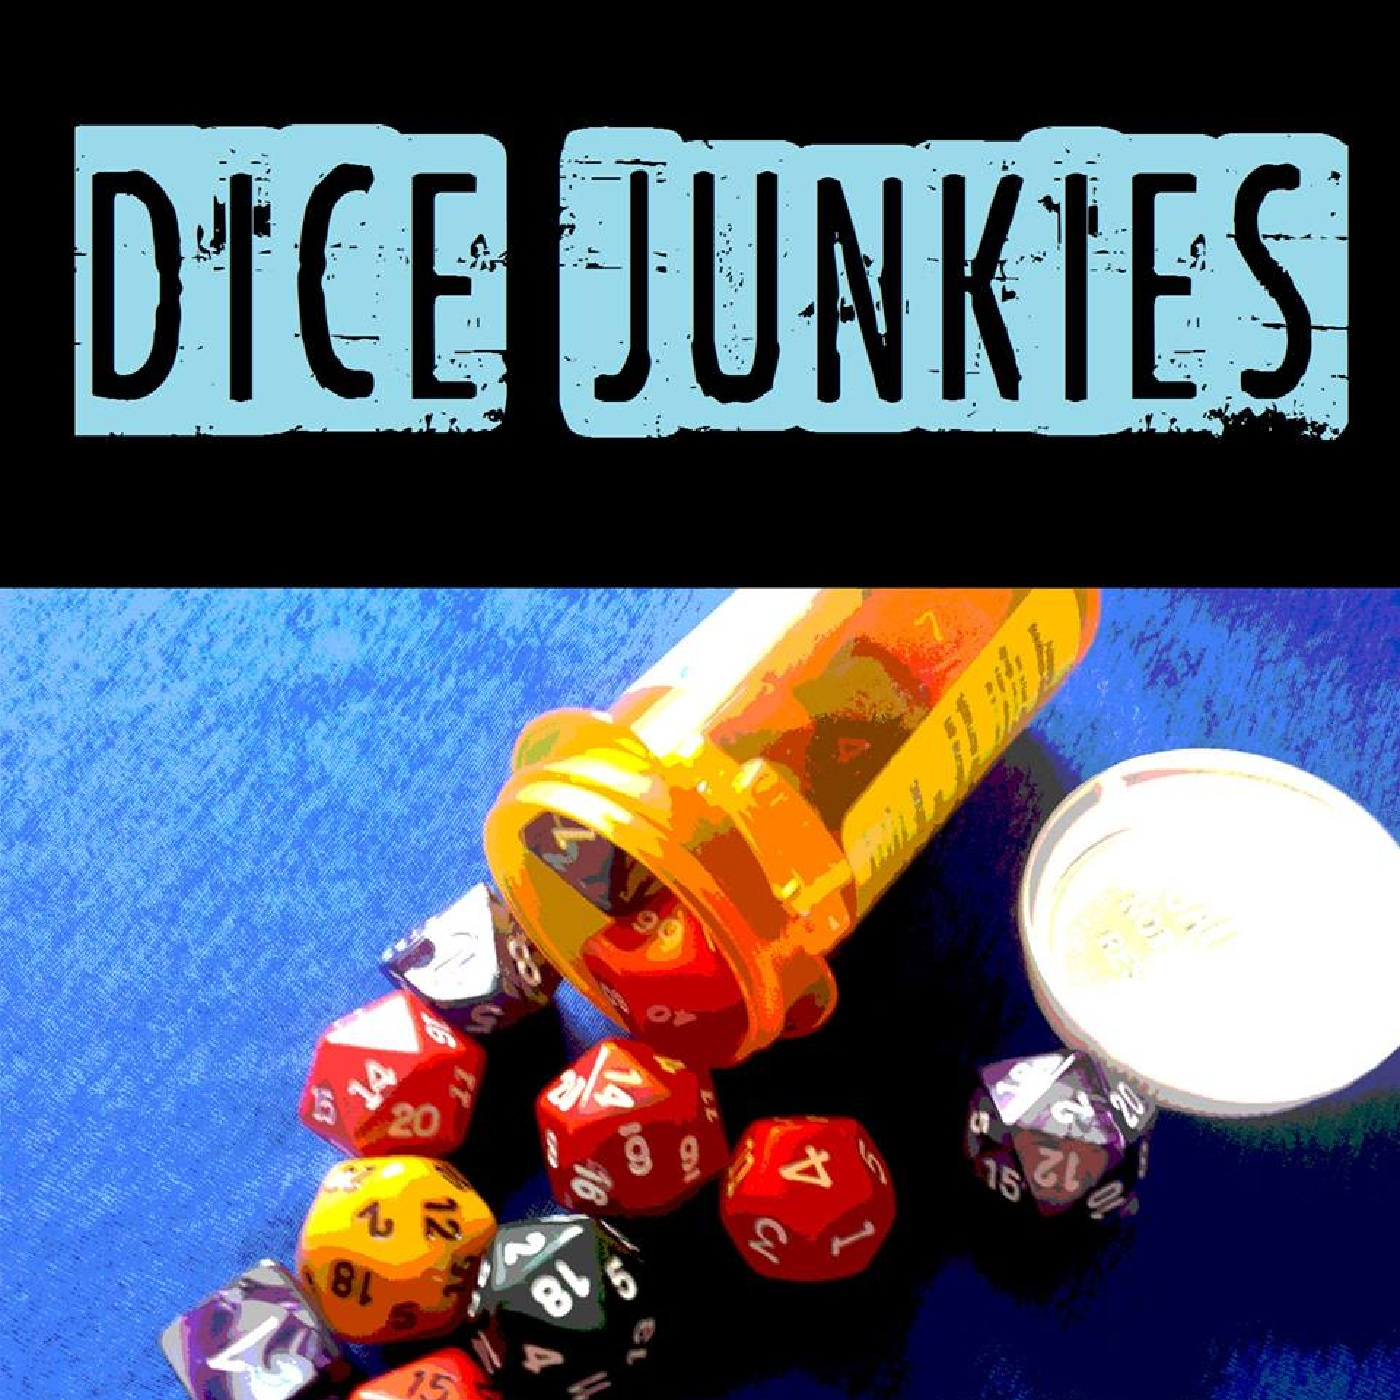 Dice Junkies